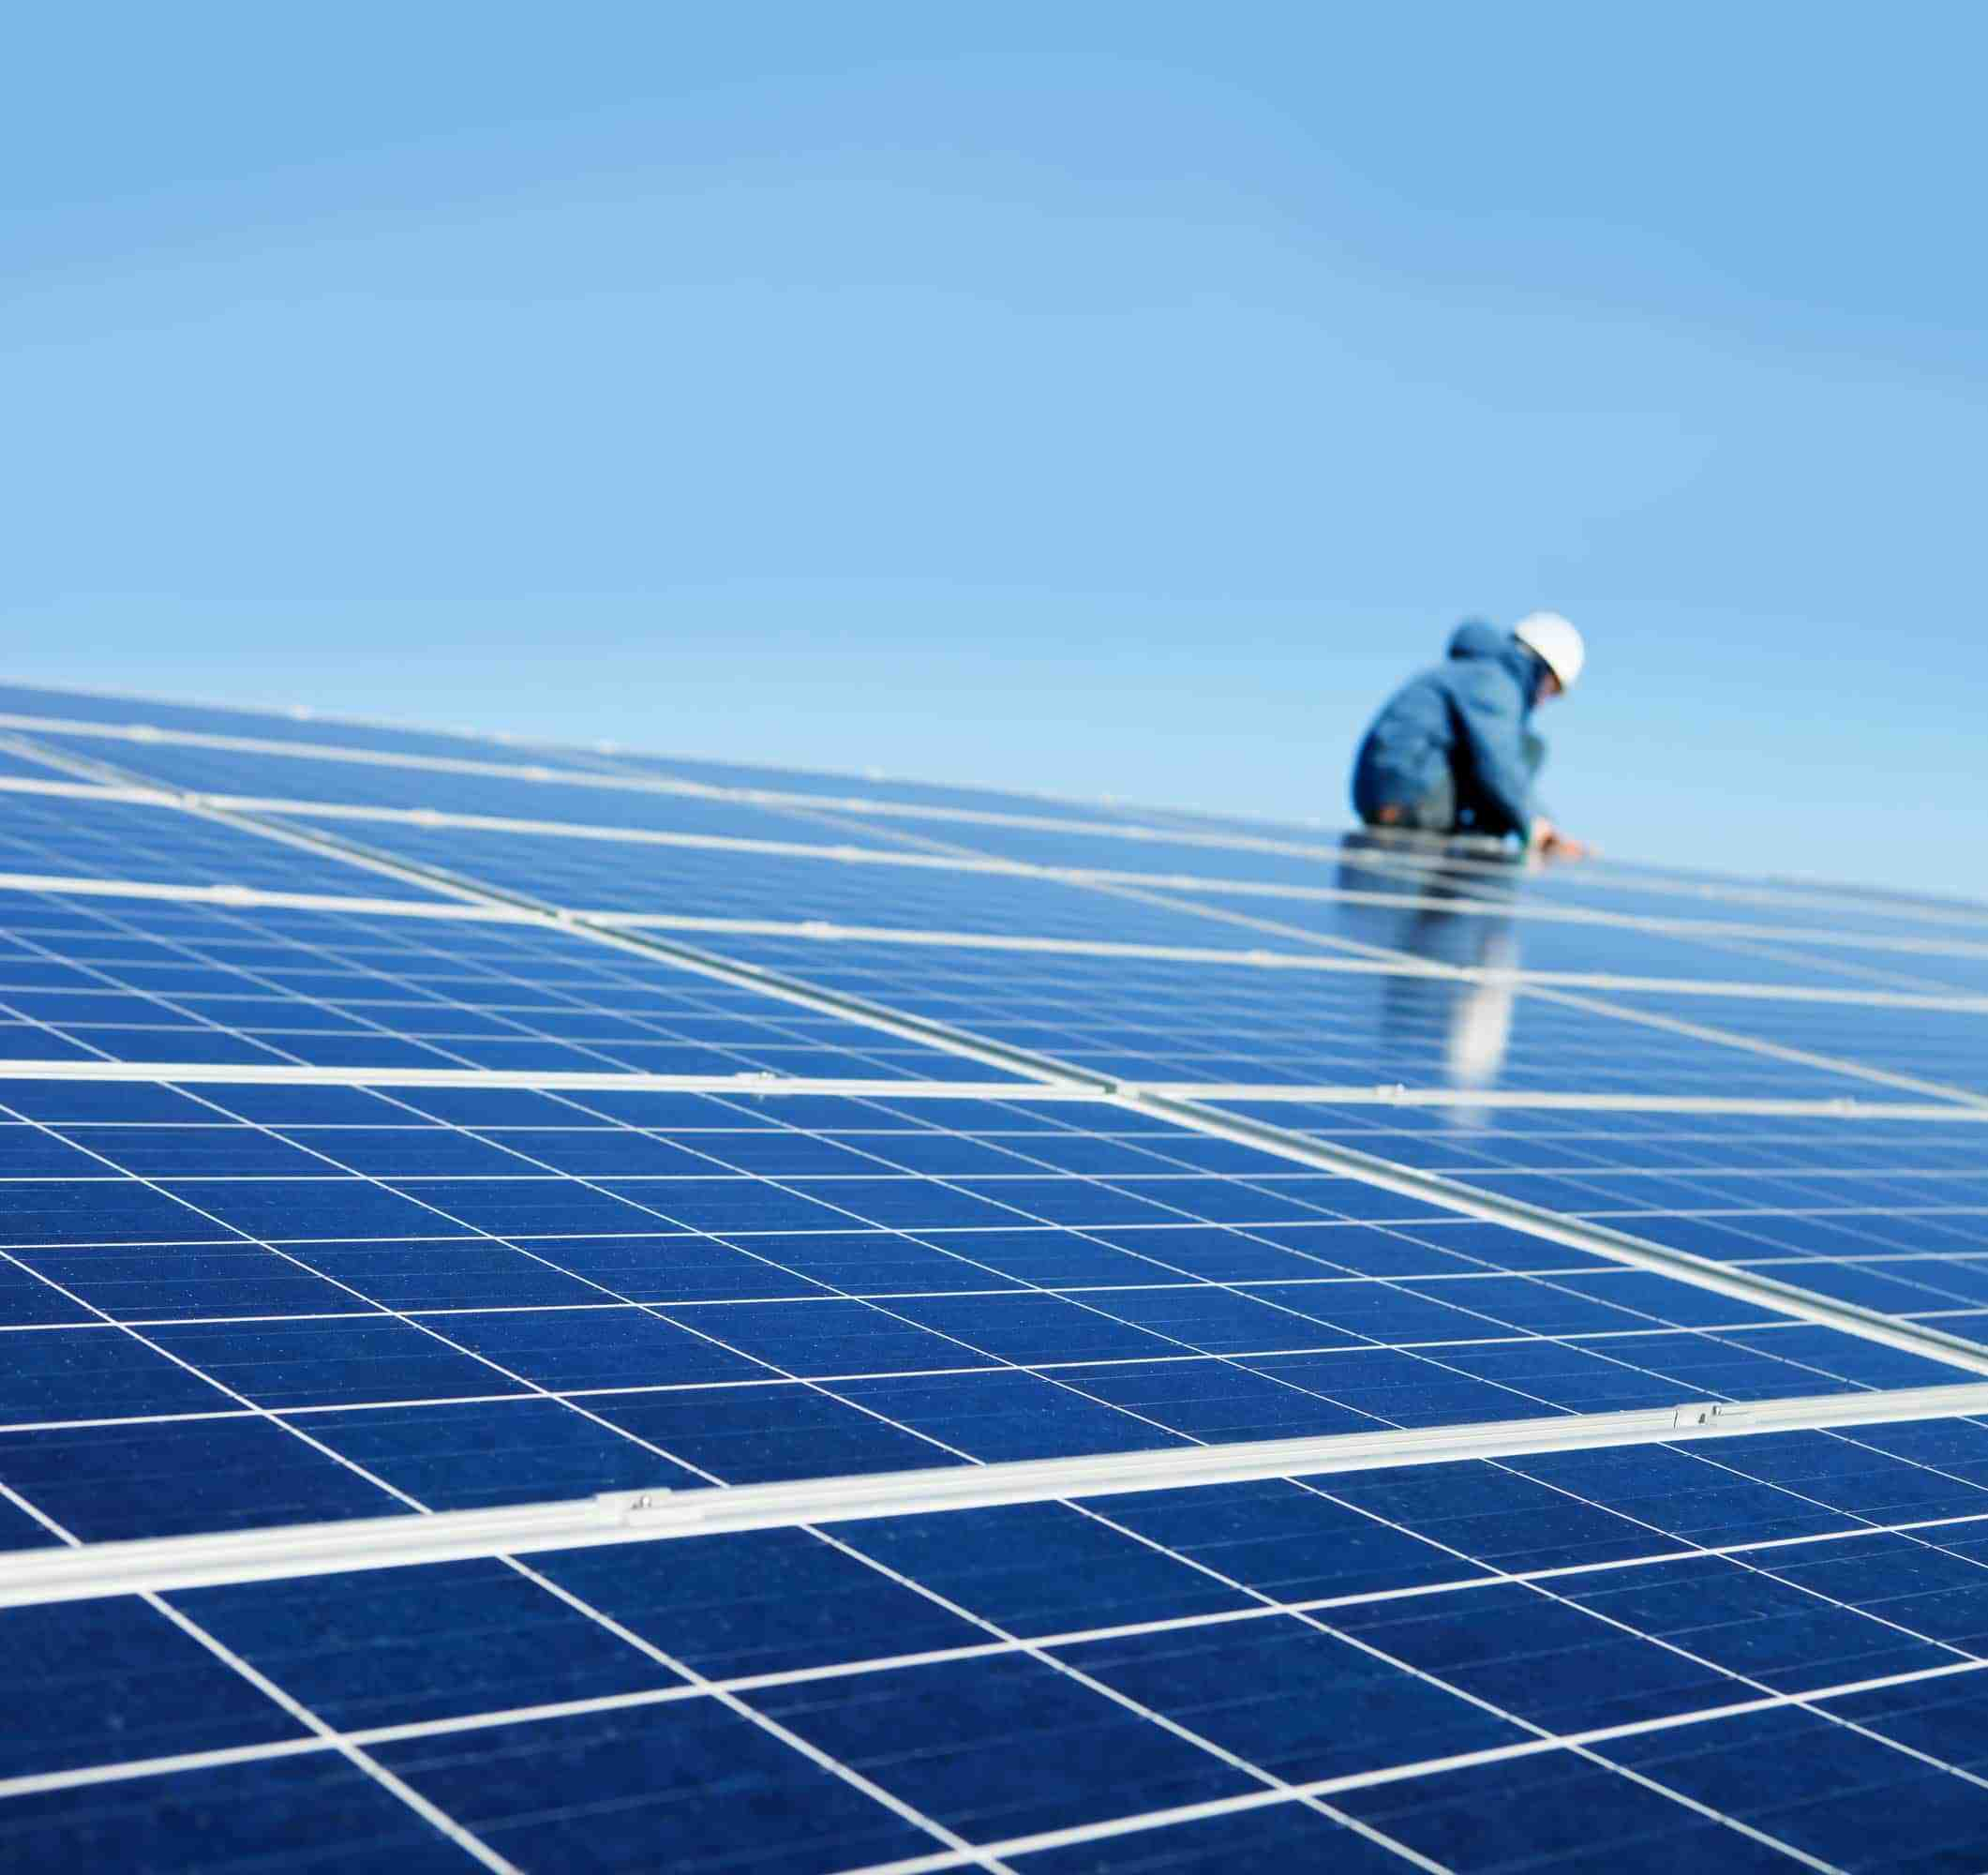 What are 5 advantages of solar energy?